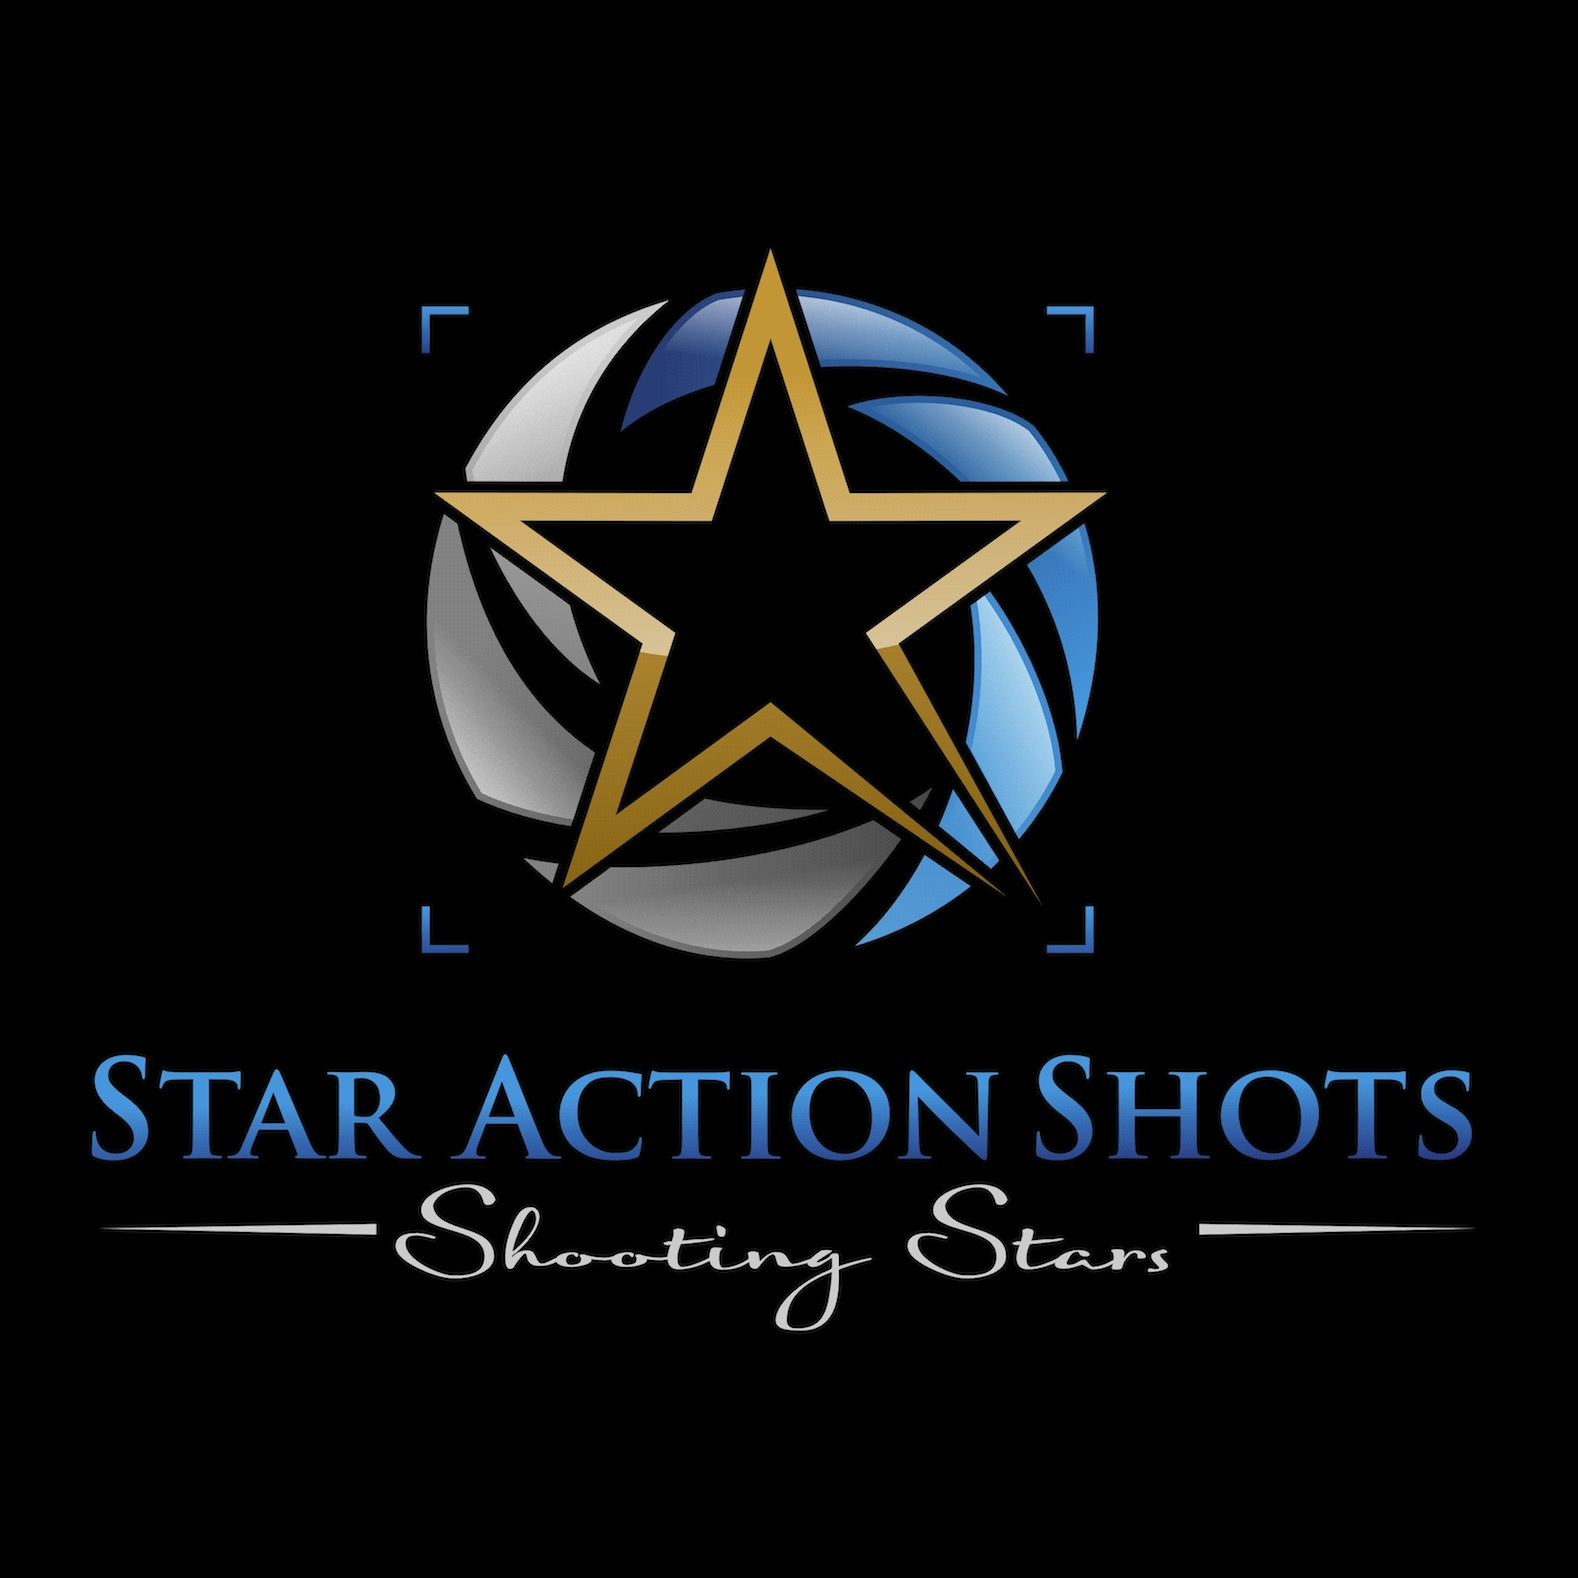 Star Action Shots, Inc.